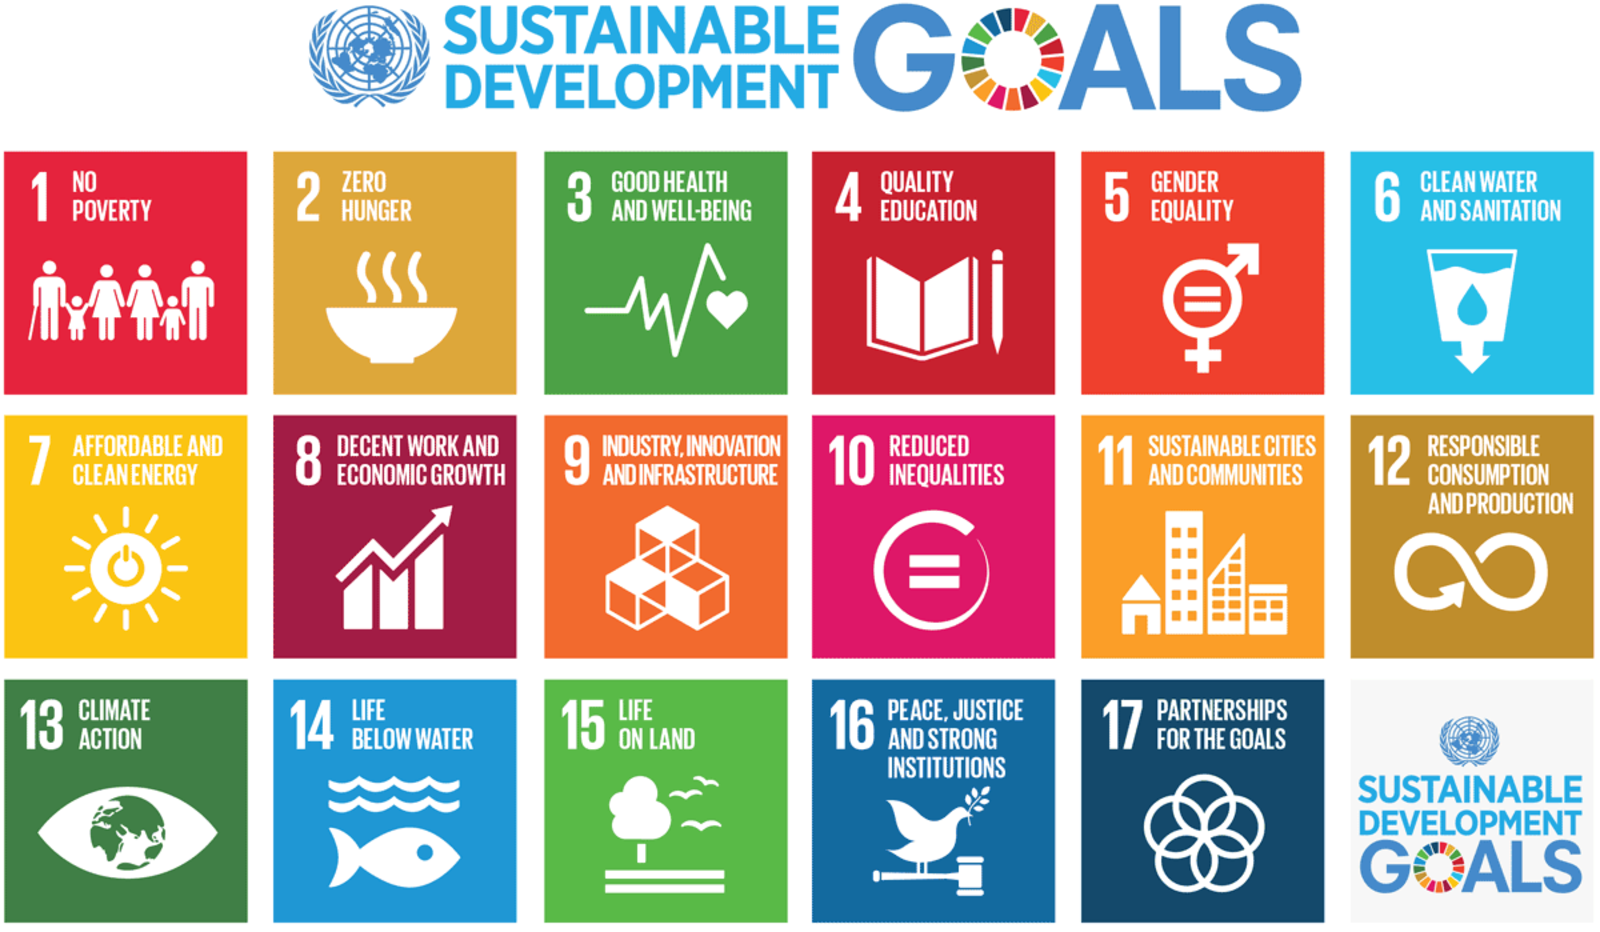 https://www.sdgfund.org/sites/default/files/styles/inline_cropped/public/sdgs